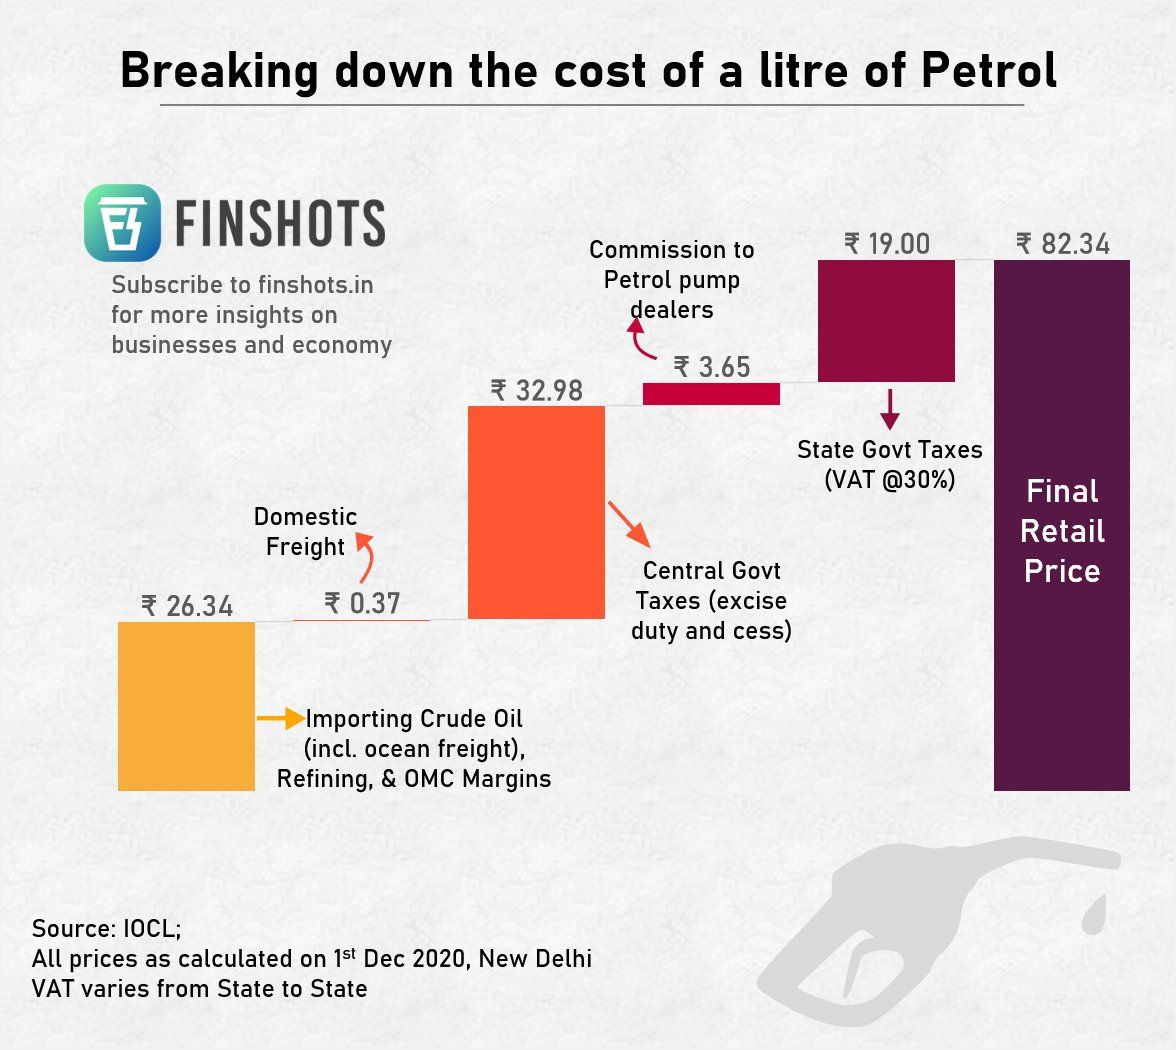 Breaking down the cost of a litre of Petrol